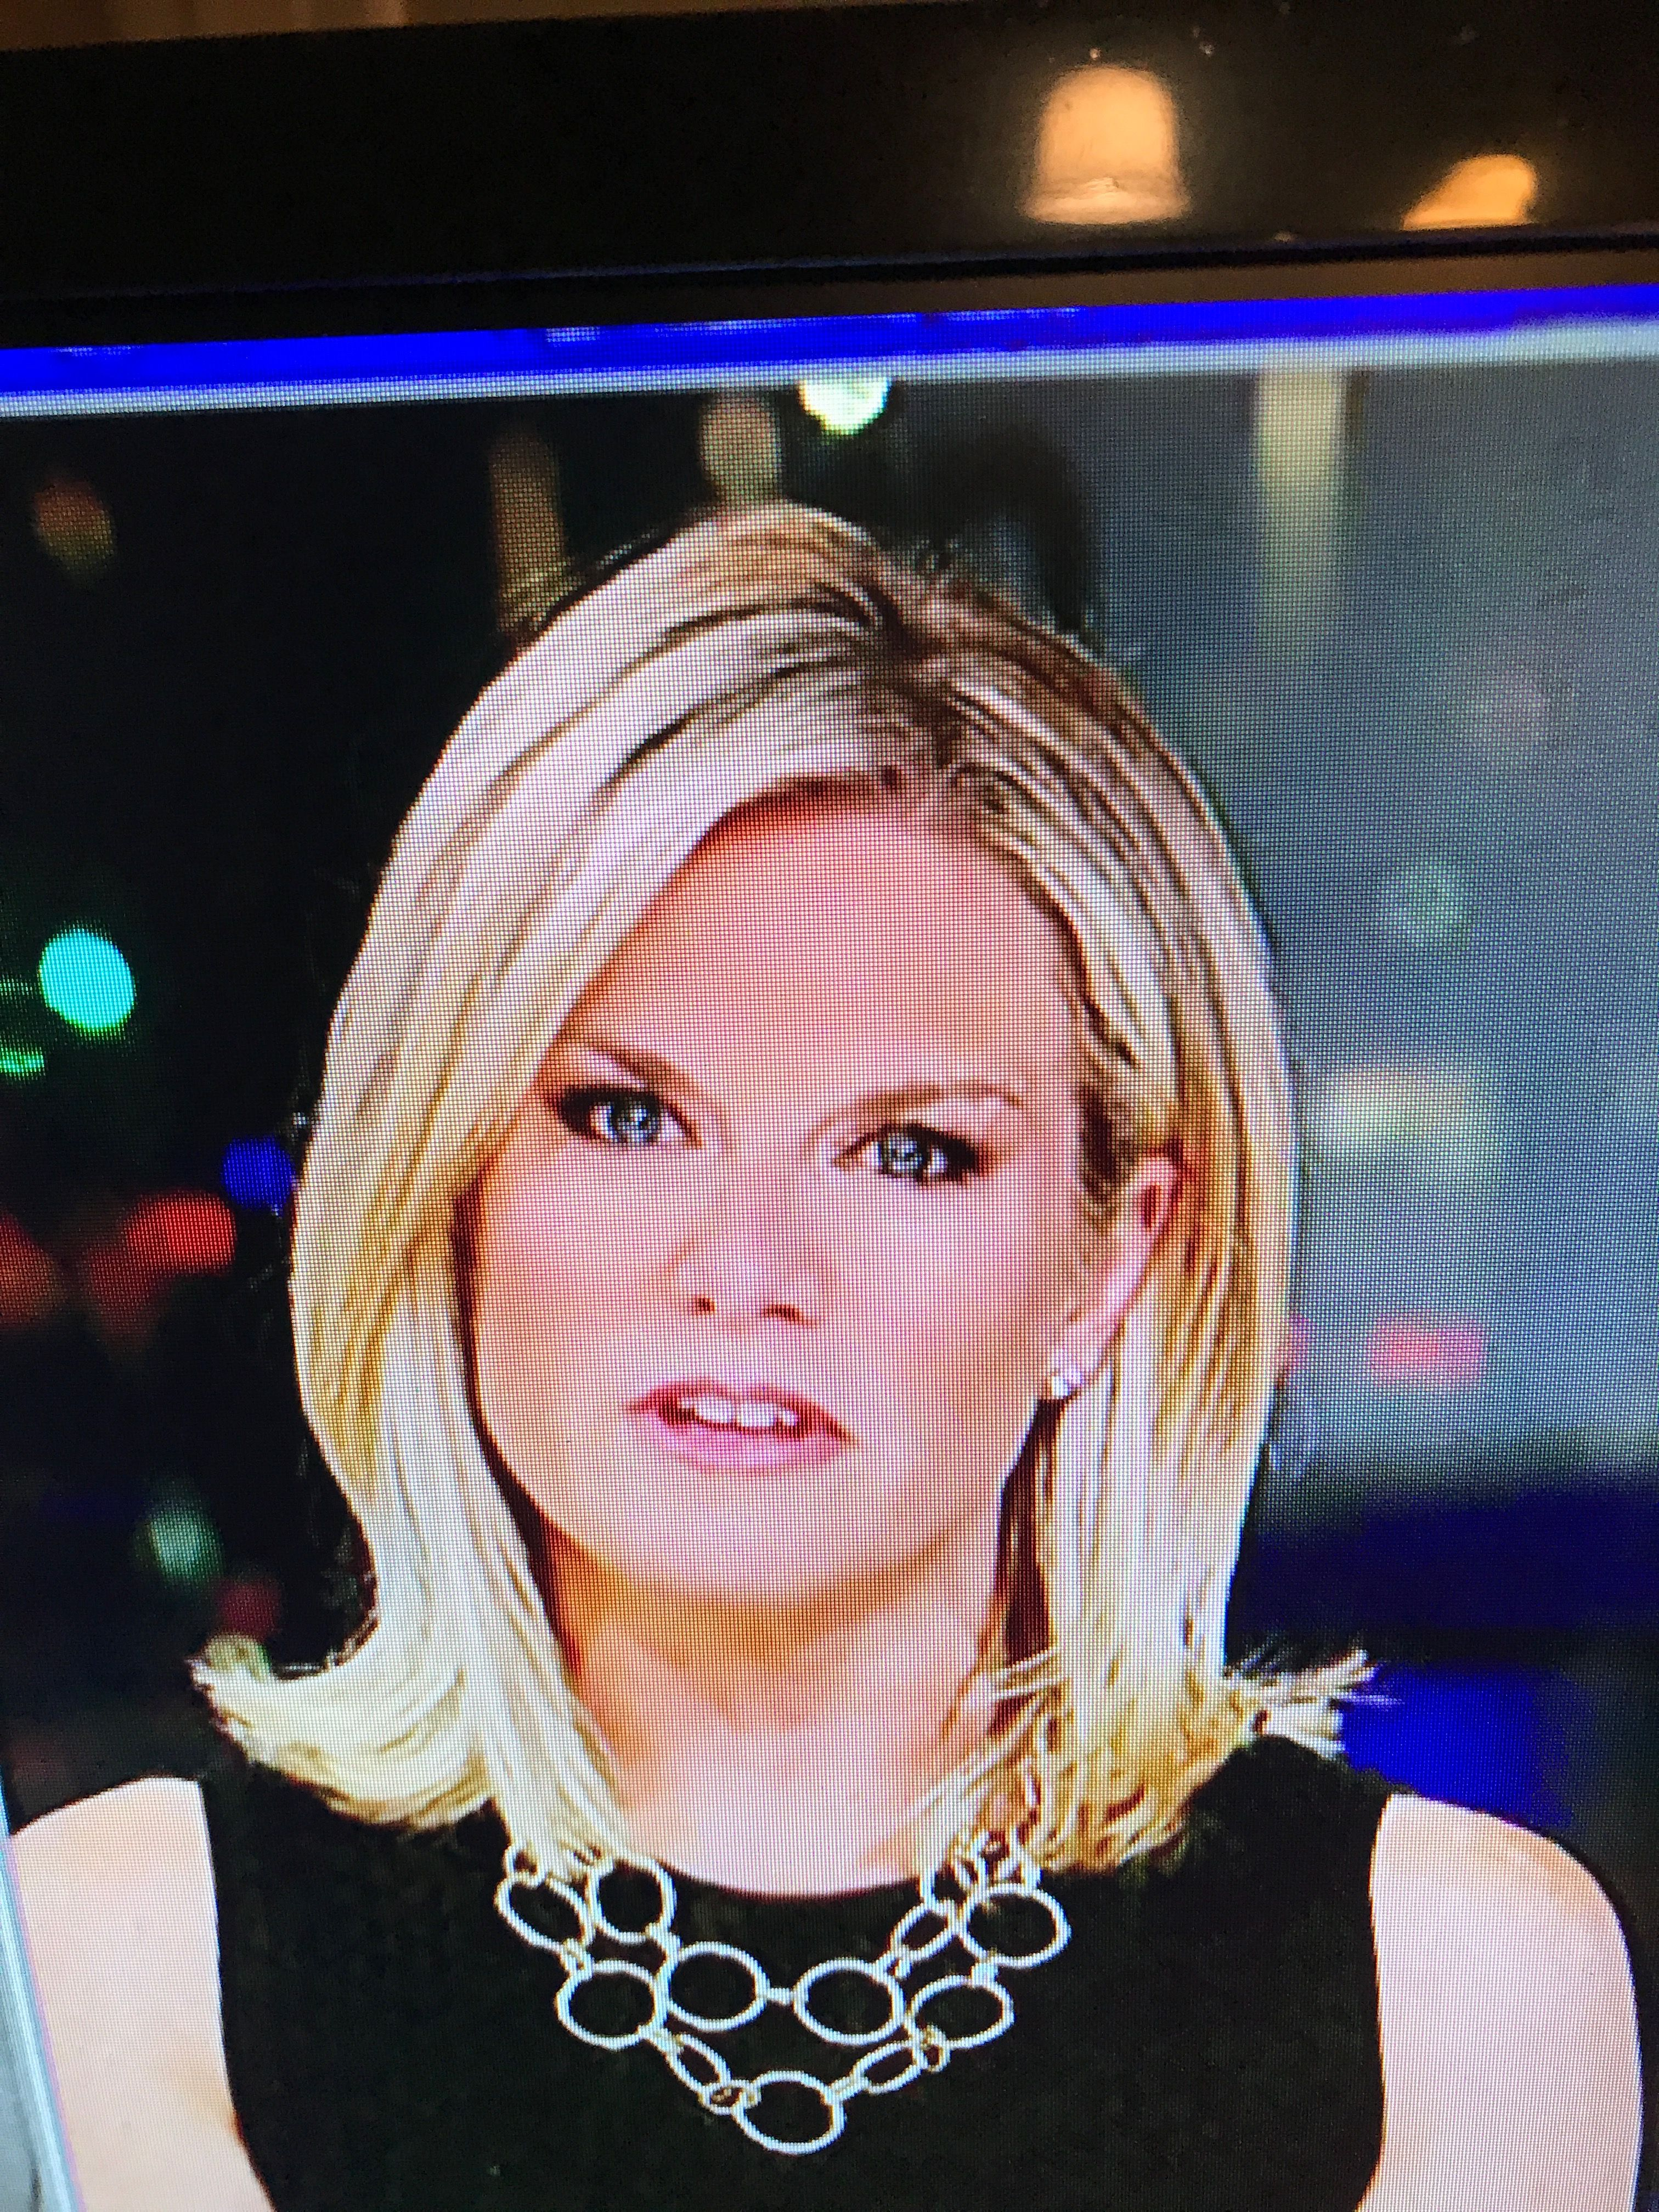 National FOX News Martha MacCallum 9-25-17, 6:05 PM CST